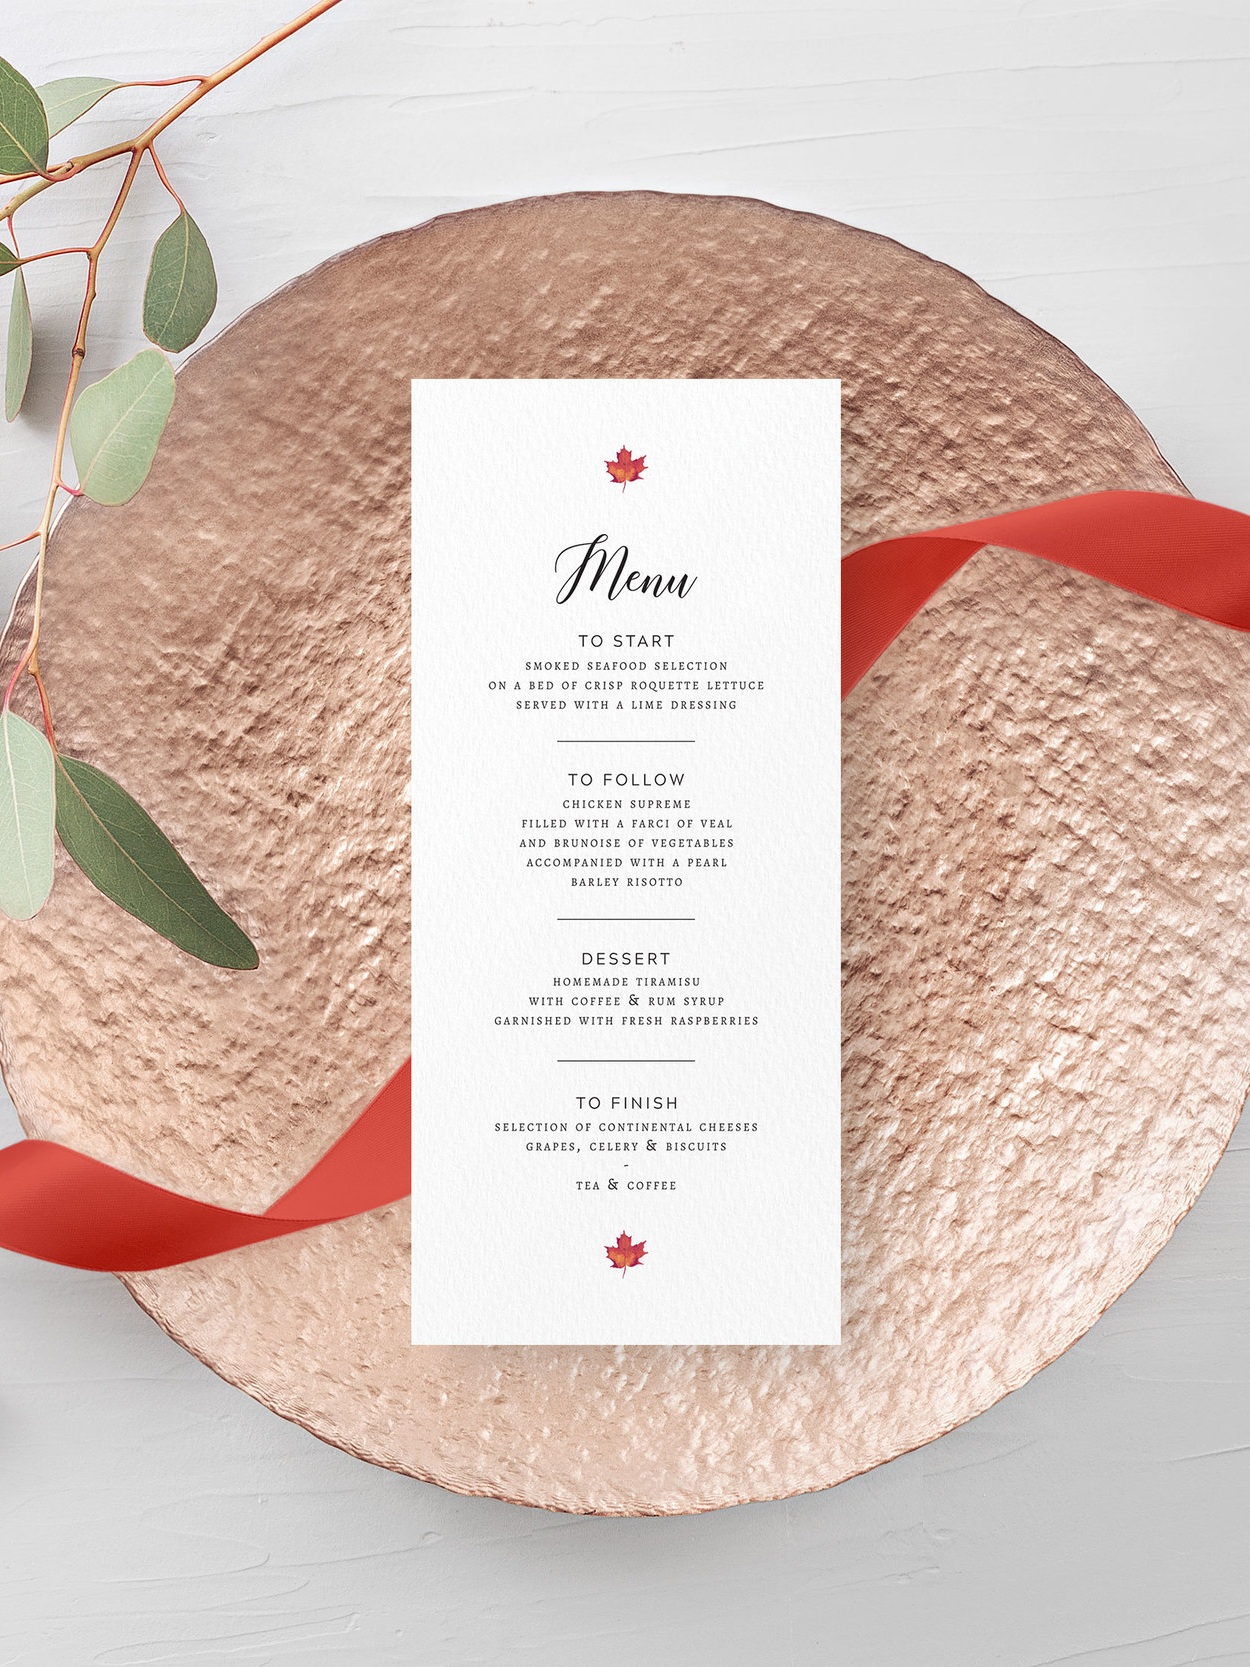 Burnt Oak - This autumnal menu card comes from our Burnt Oak collection, featuring classical typography and vibrant leaves and foliage for an autumn wedding day.Our menu cards can be printed single- or double-sided, and can double as place cards by having them personalised with a guest name too.Pricing£1.15 - standard, single-sided / £1.65 - personalised, single-sided£1.40 - standard, double-sided / £1.90 - personalised, double-sided